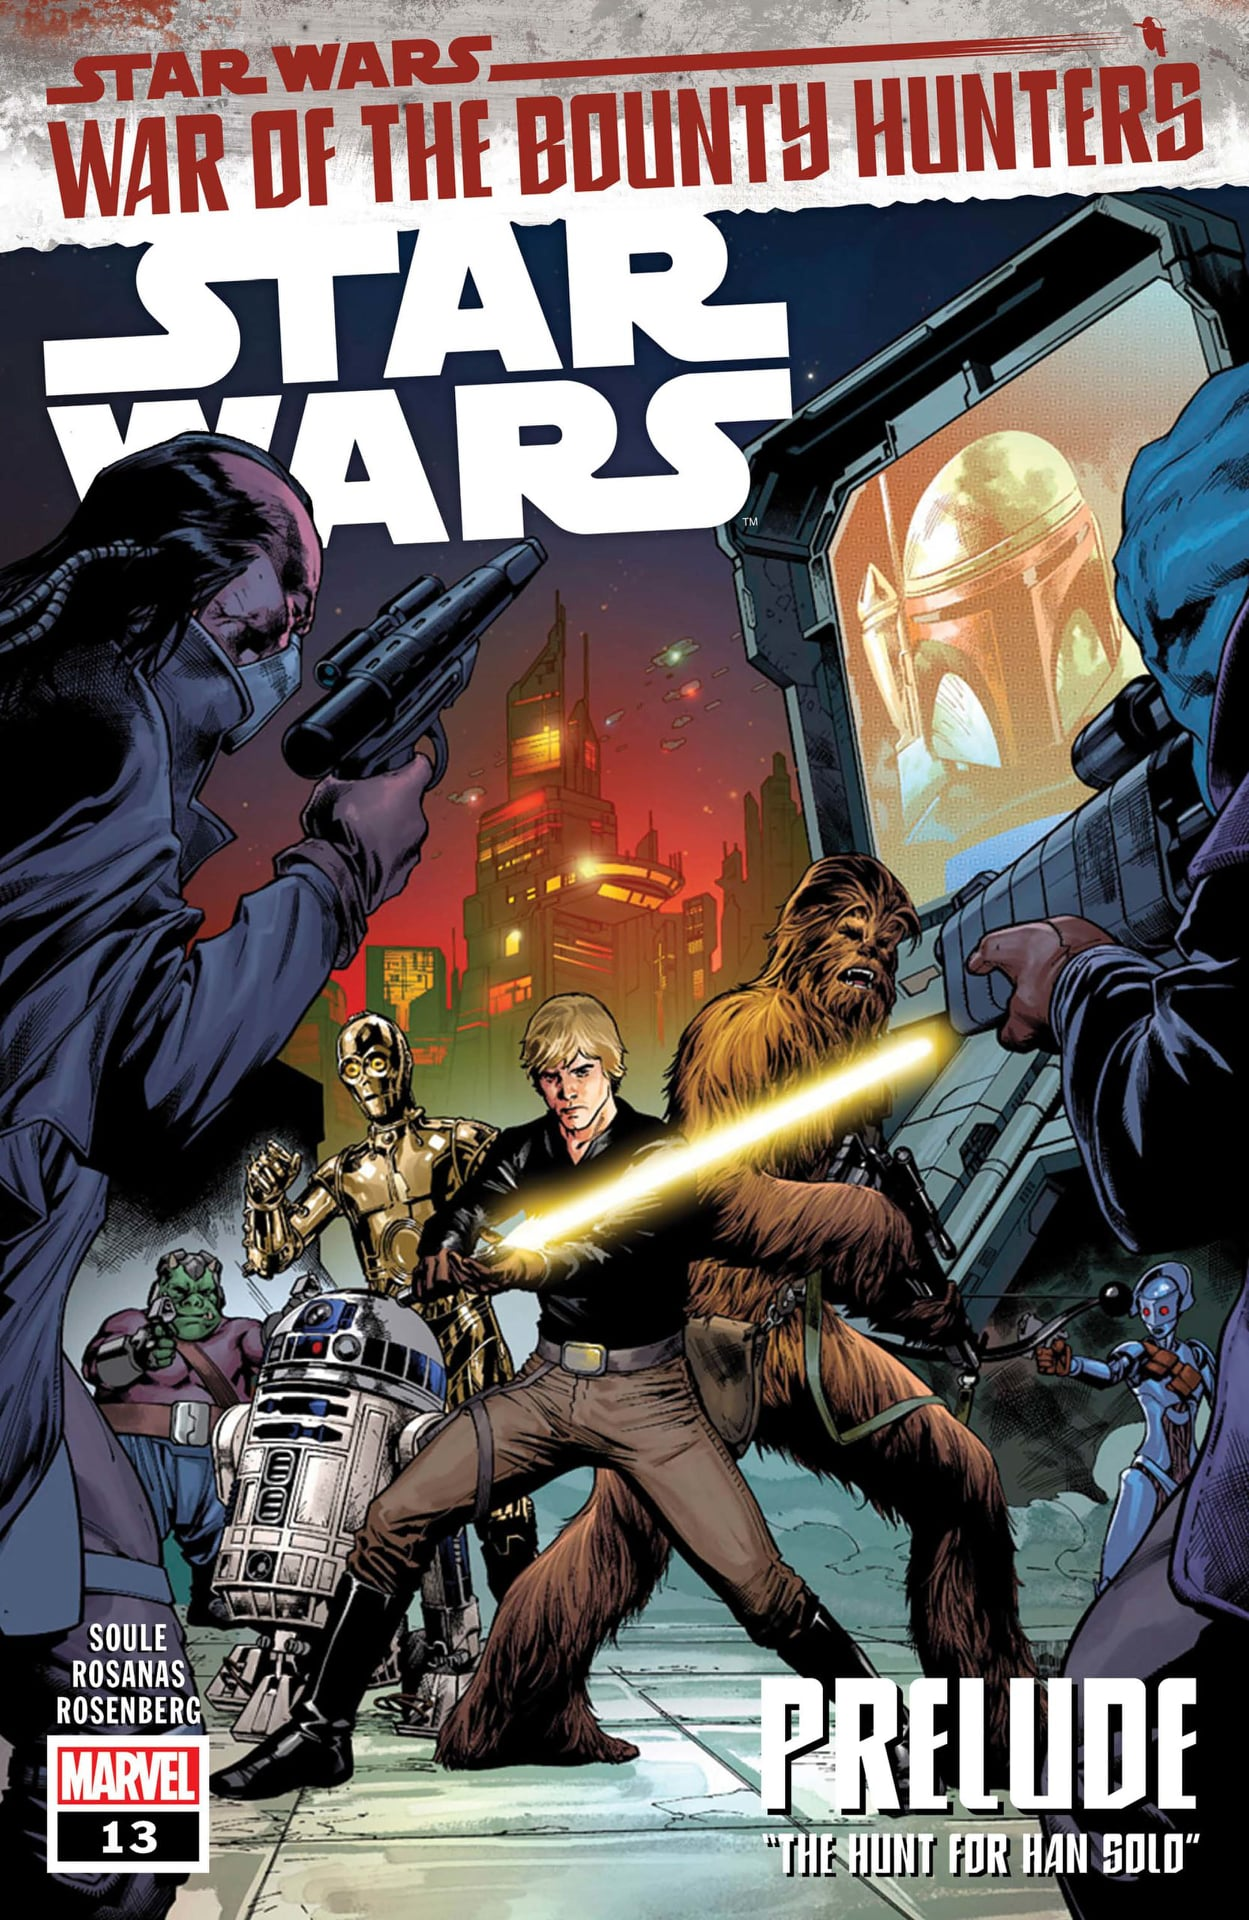 Star Wars War of the Bounty Hunters: Save Solo